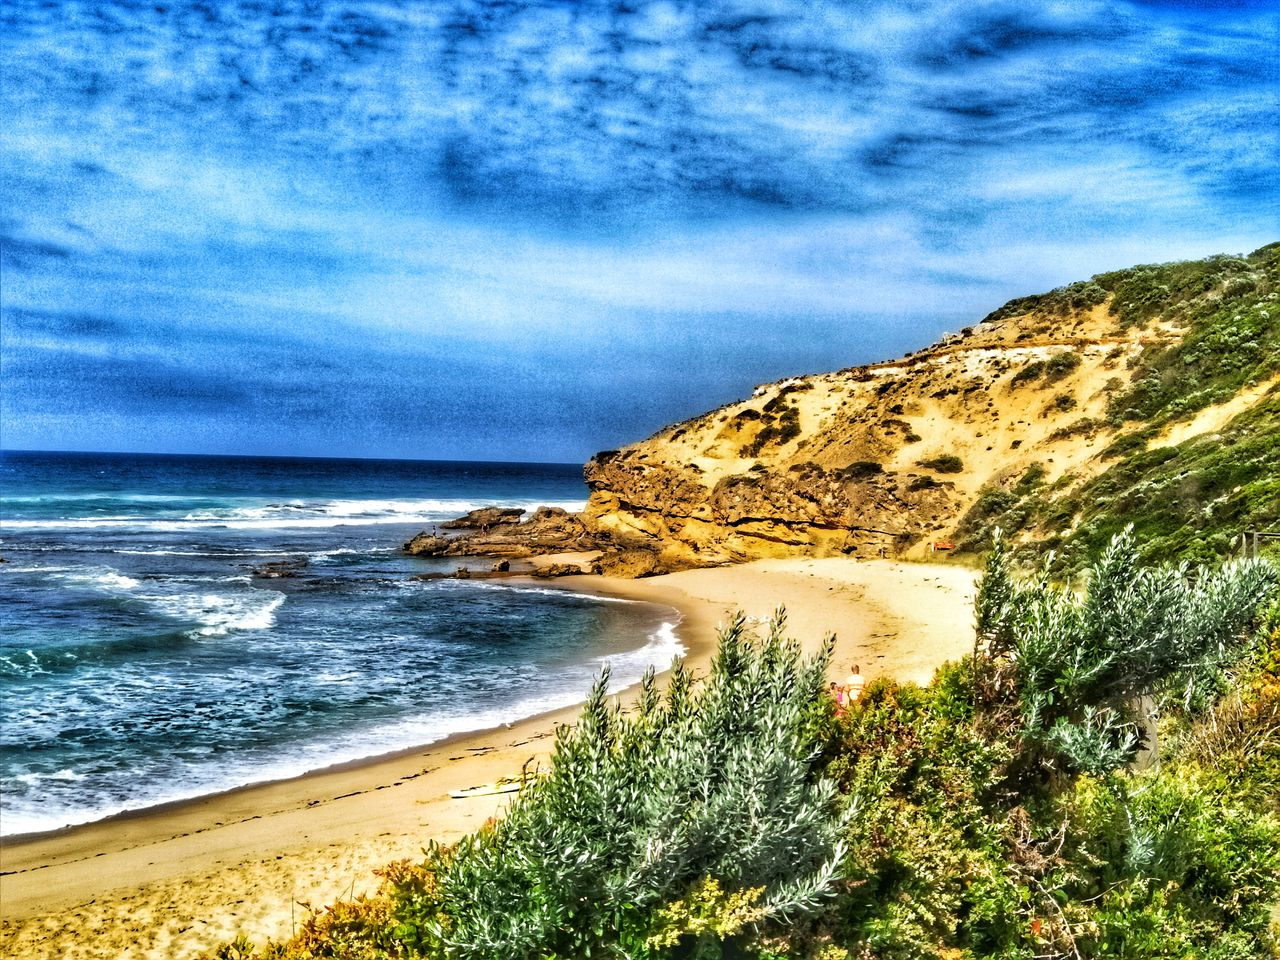 sea, nature, beauty in nature, sky, scenics, tranquility, tranquil scene, horizon over water, no people, water, outdoors, day, plant, landscape, beach, tree, mountain, scenery